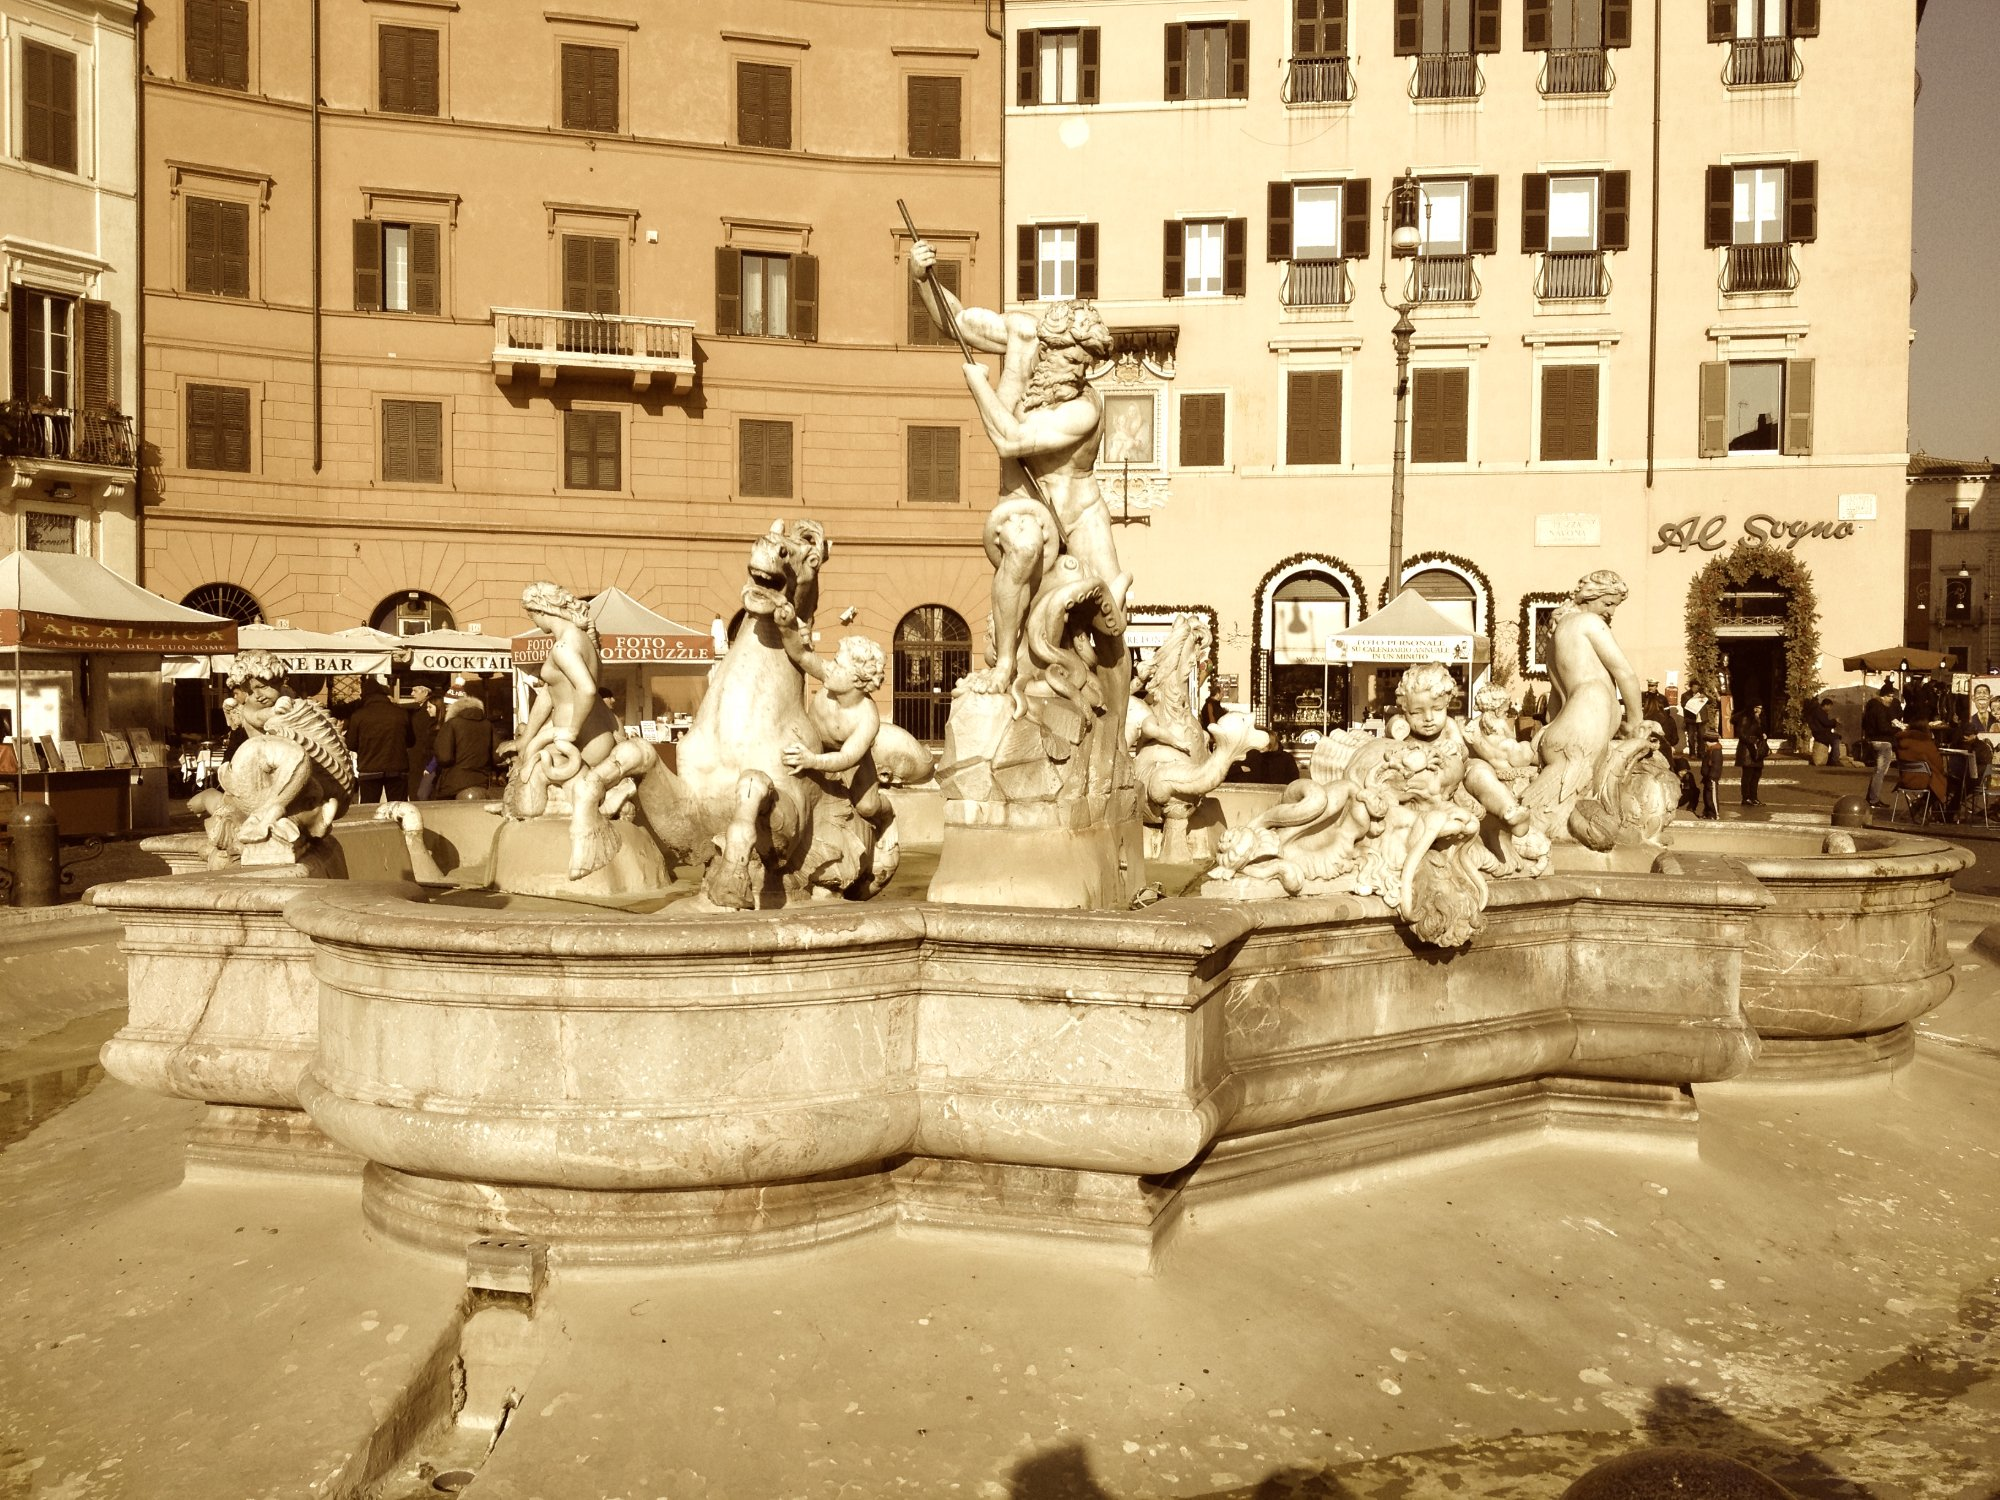 Neptune Fountain, Piazza Navona